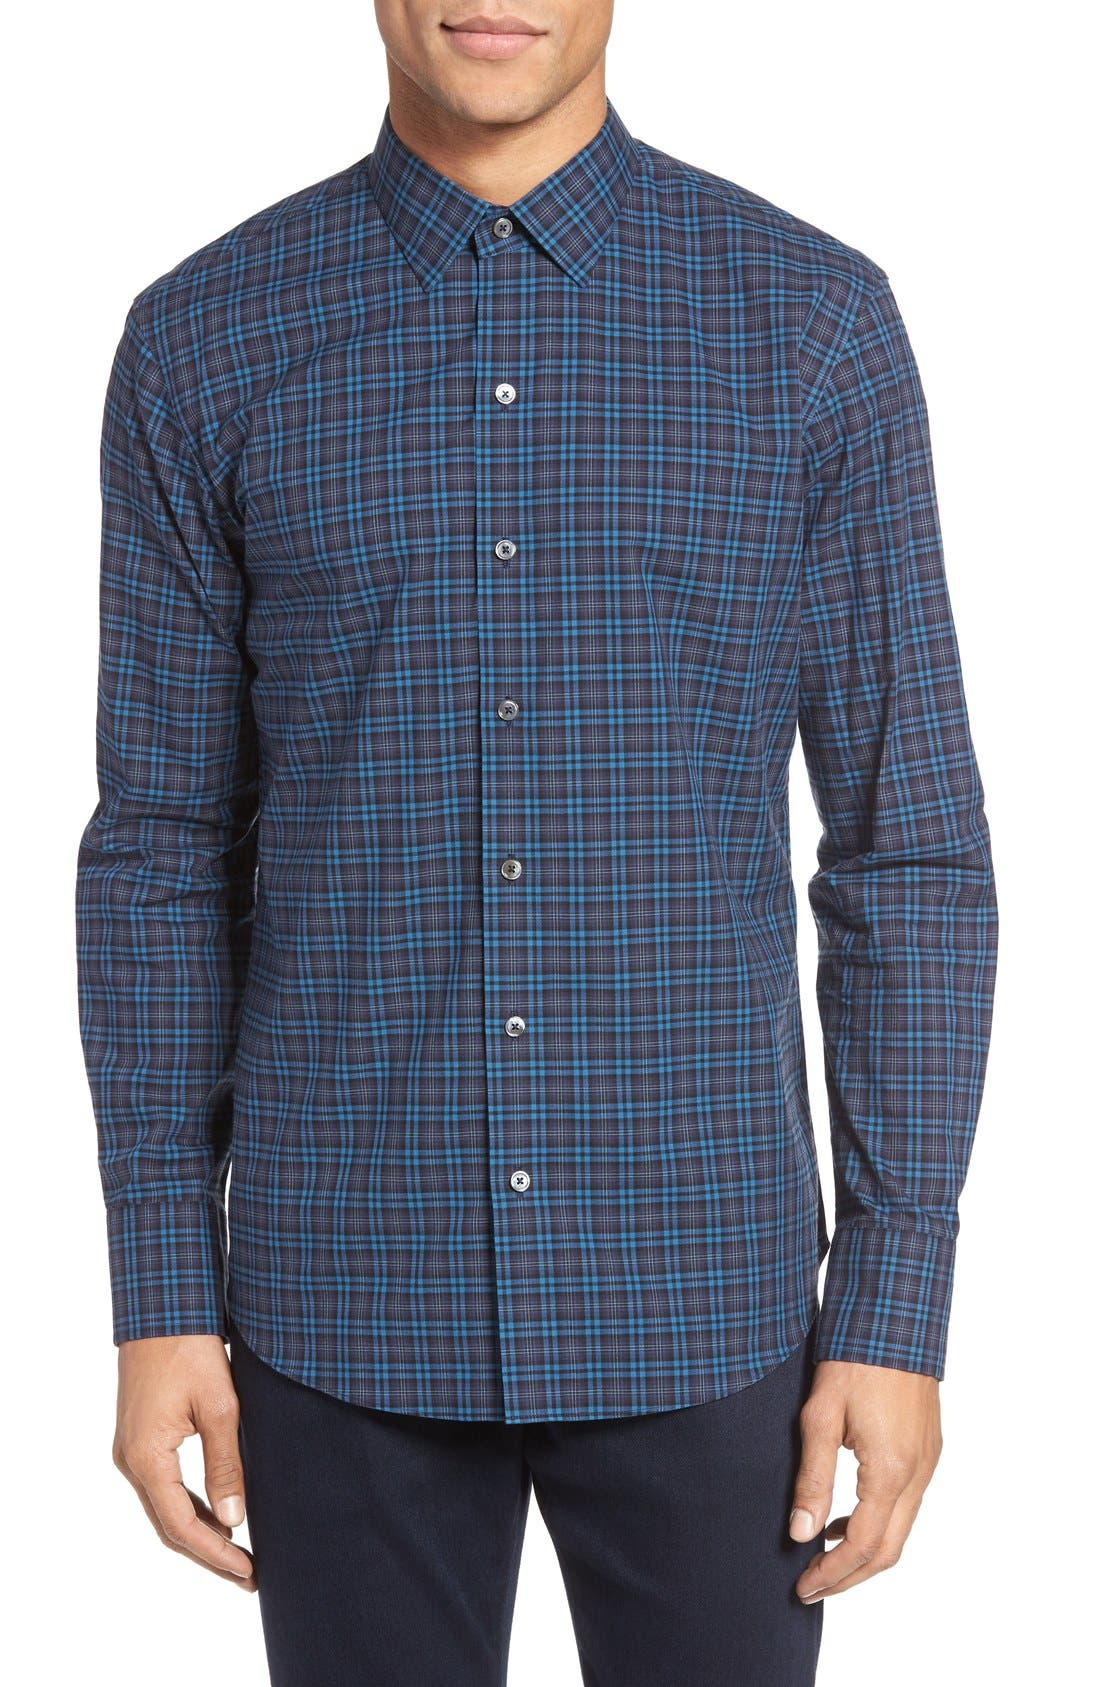 Alternate Image 1 Selected - Zachary Prell Adler Trim Fit Plaid Sport Shirt